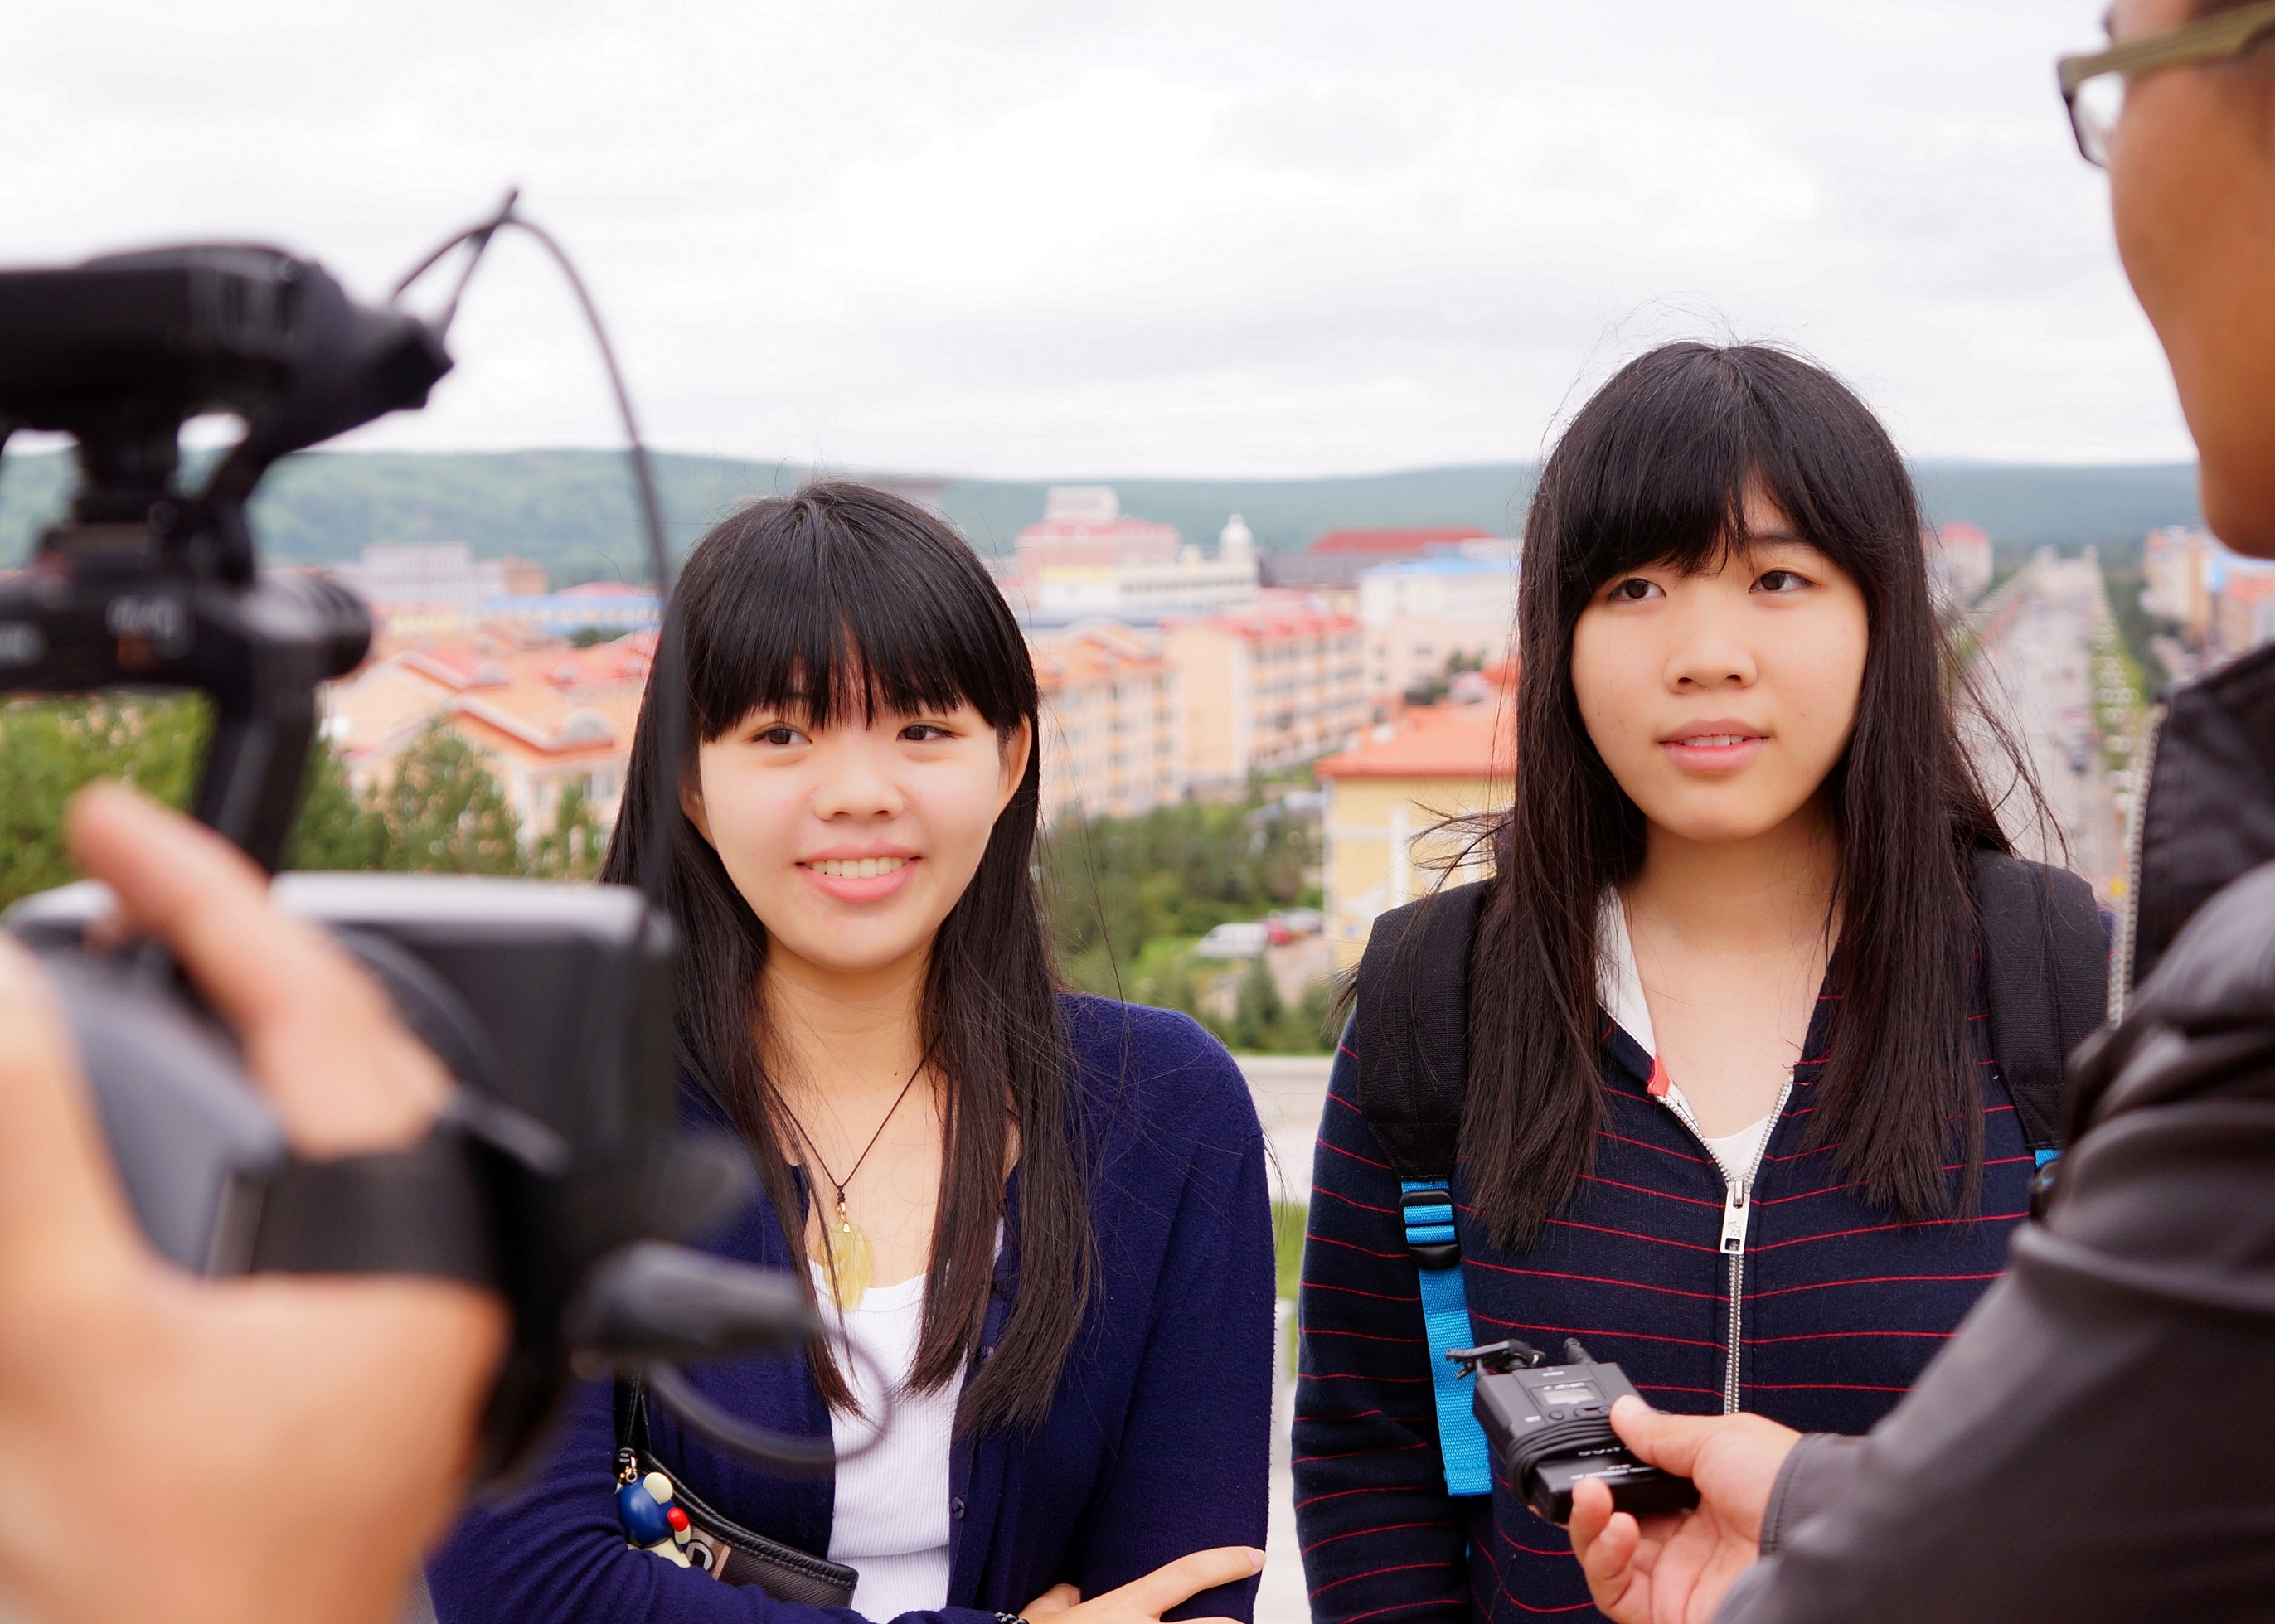 (From left) UM Reporters Momo and Terri are interviewed by a local media company